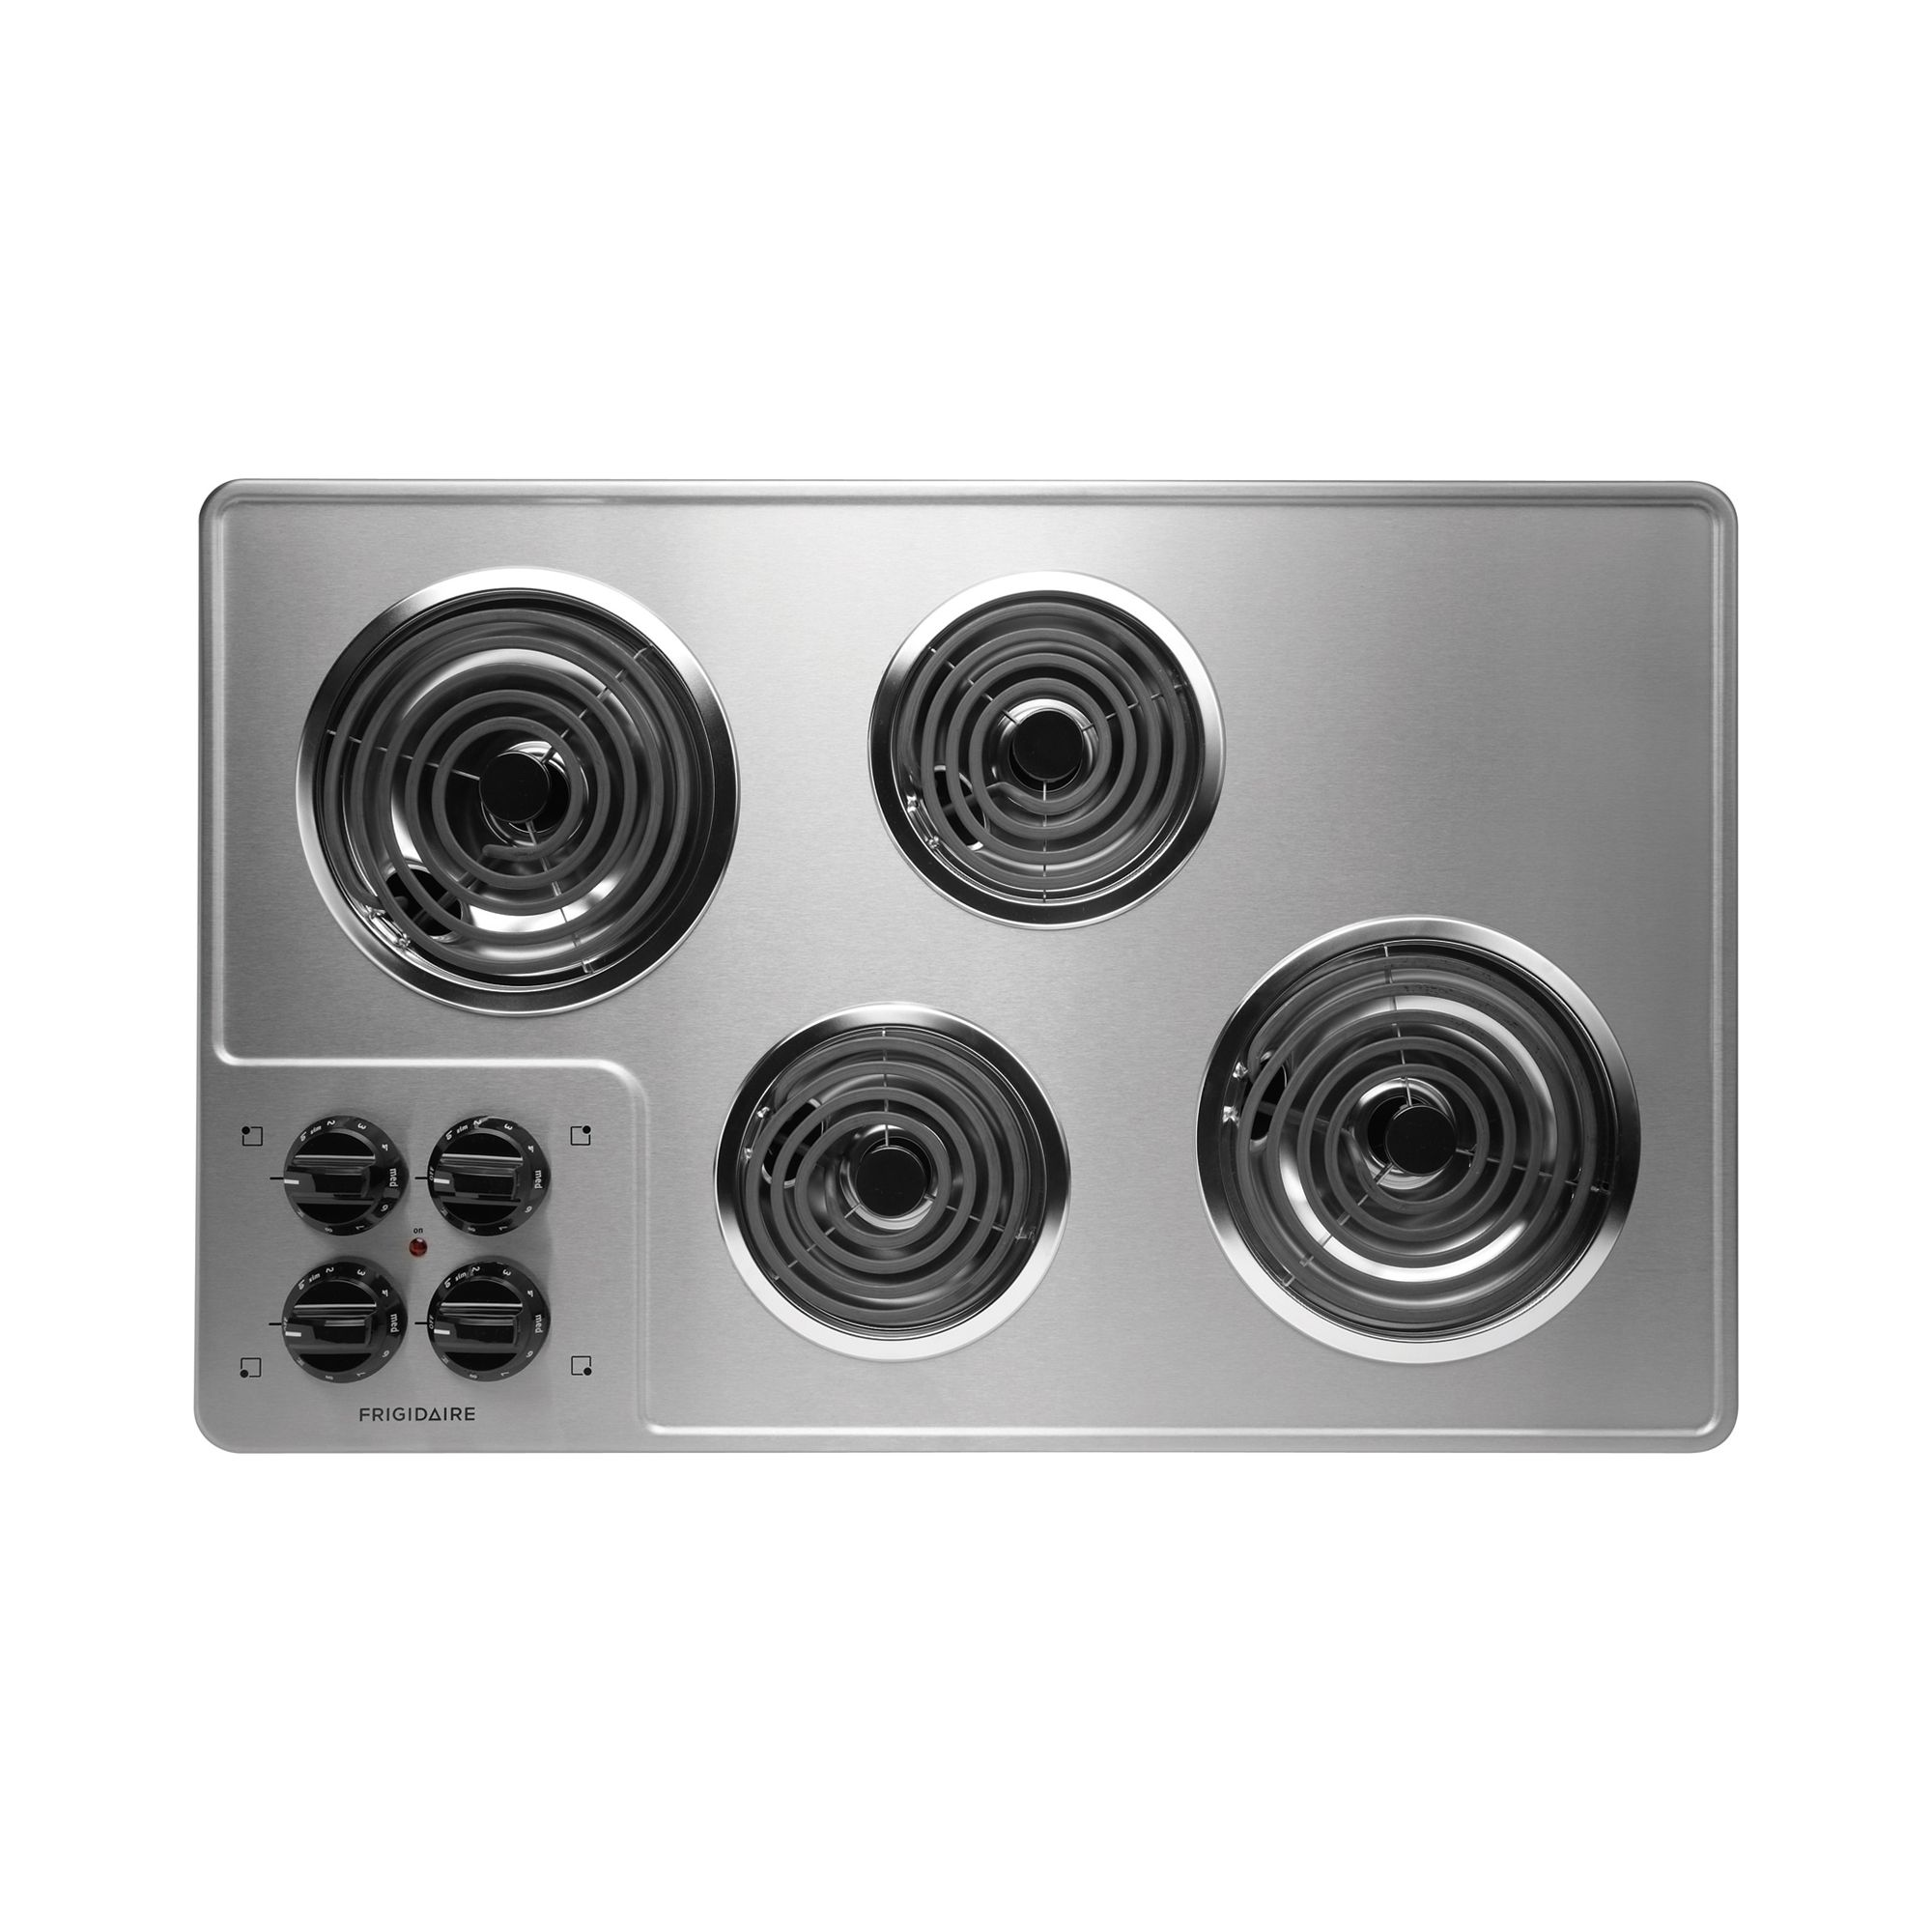 Cheap Electric Cooktops Frigidaire Ffec3205ls 32 Electric Cooktop Sears Outlet